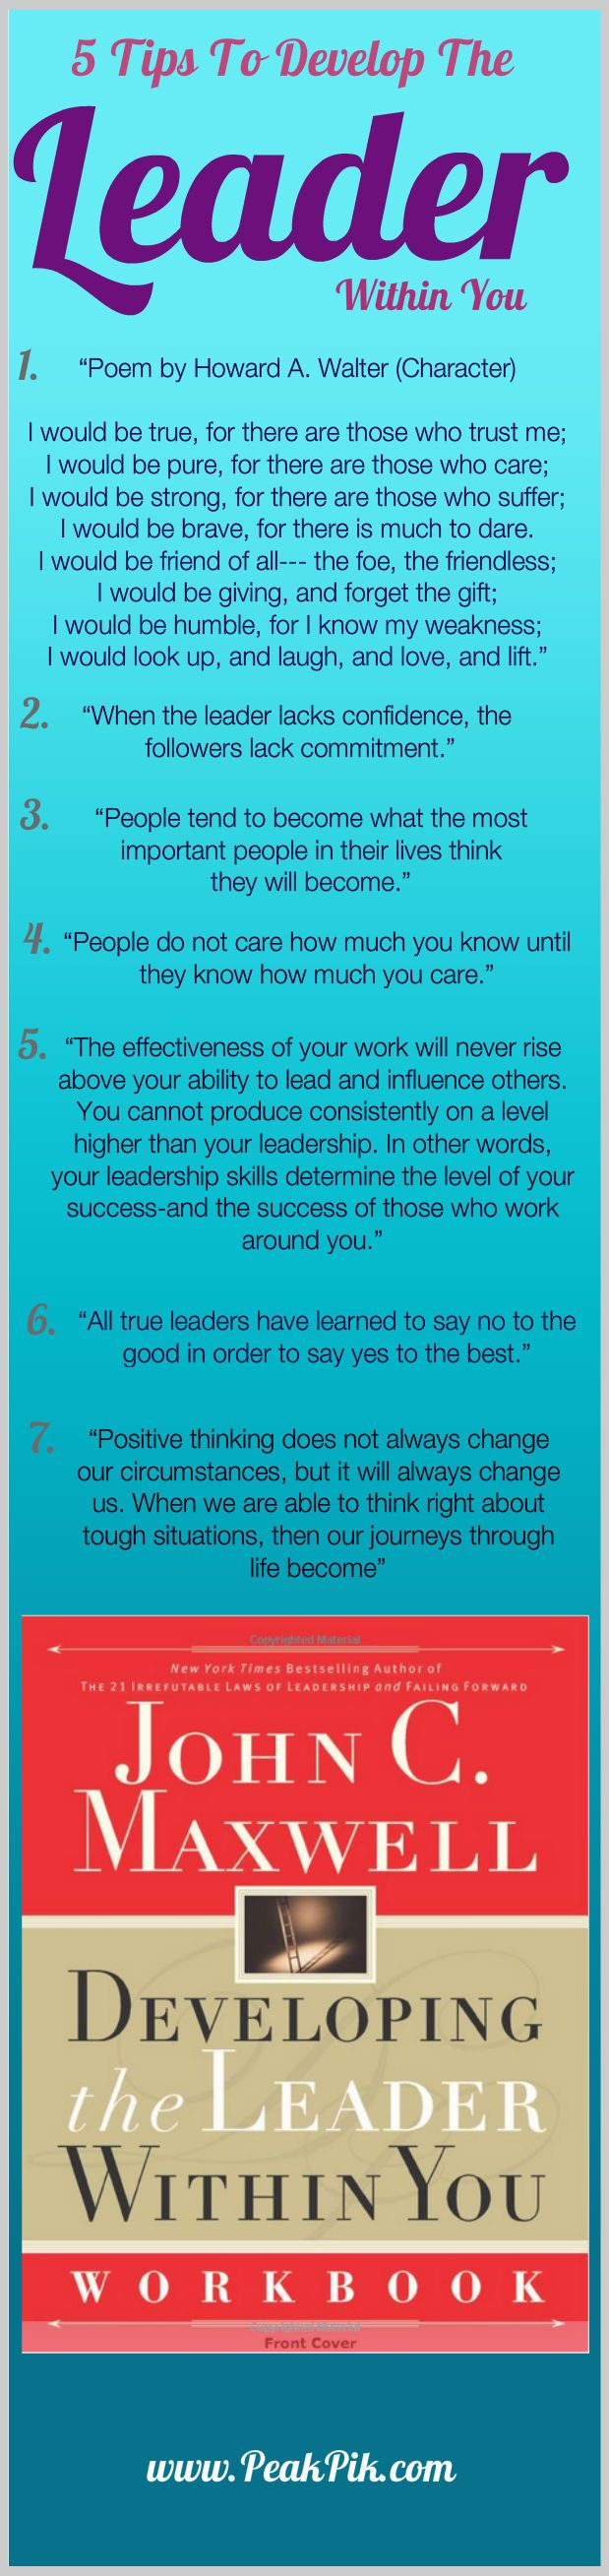 Daily tips and motivation developing the leader within you daily tips and motivation developing the leader within you john c maxwell xflitez Images